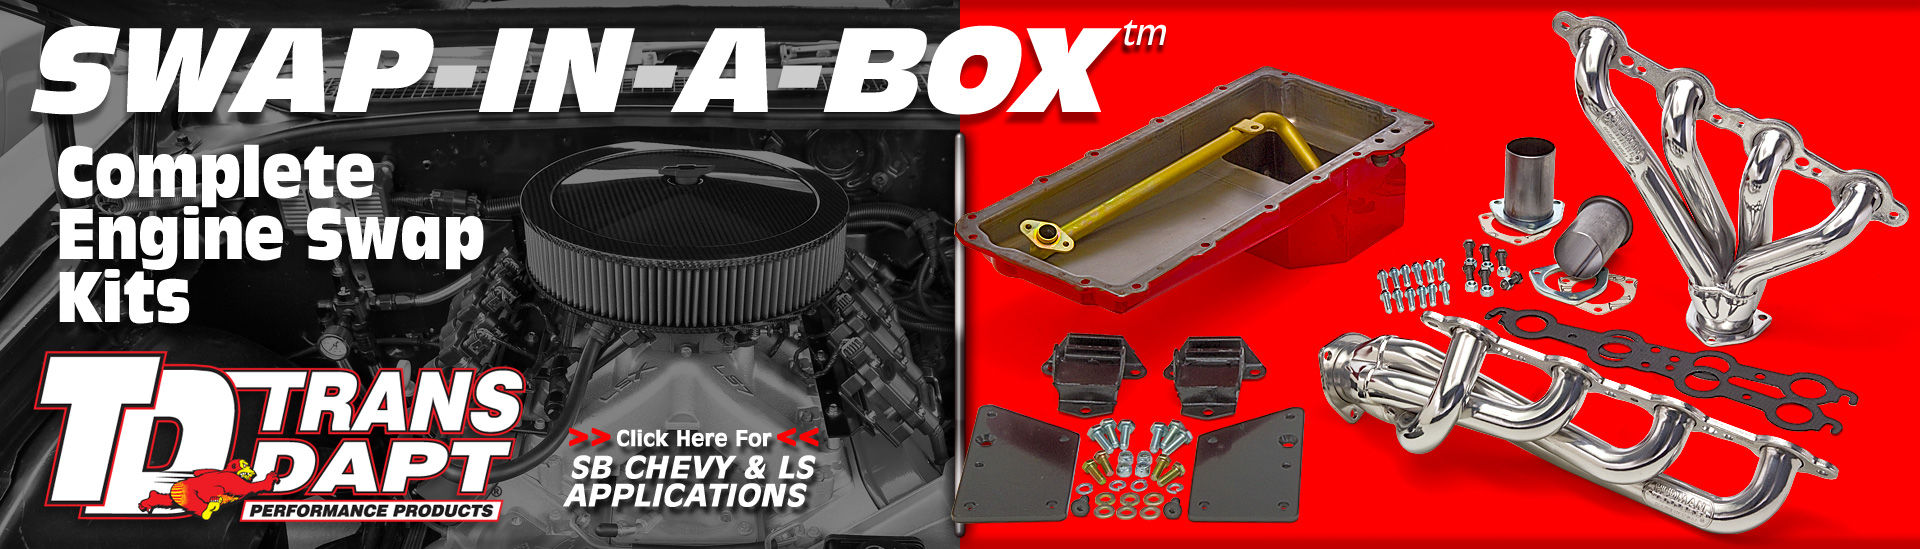 Trans-Dapt Engine Swap-in-a-box kits